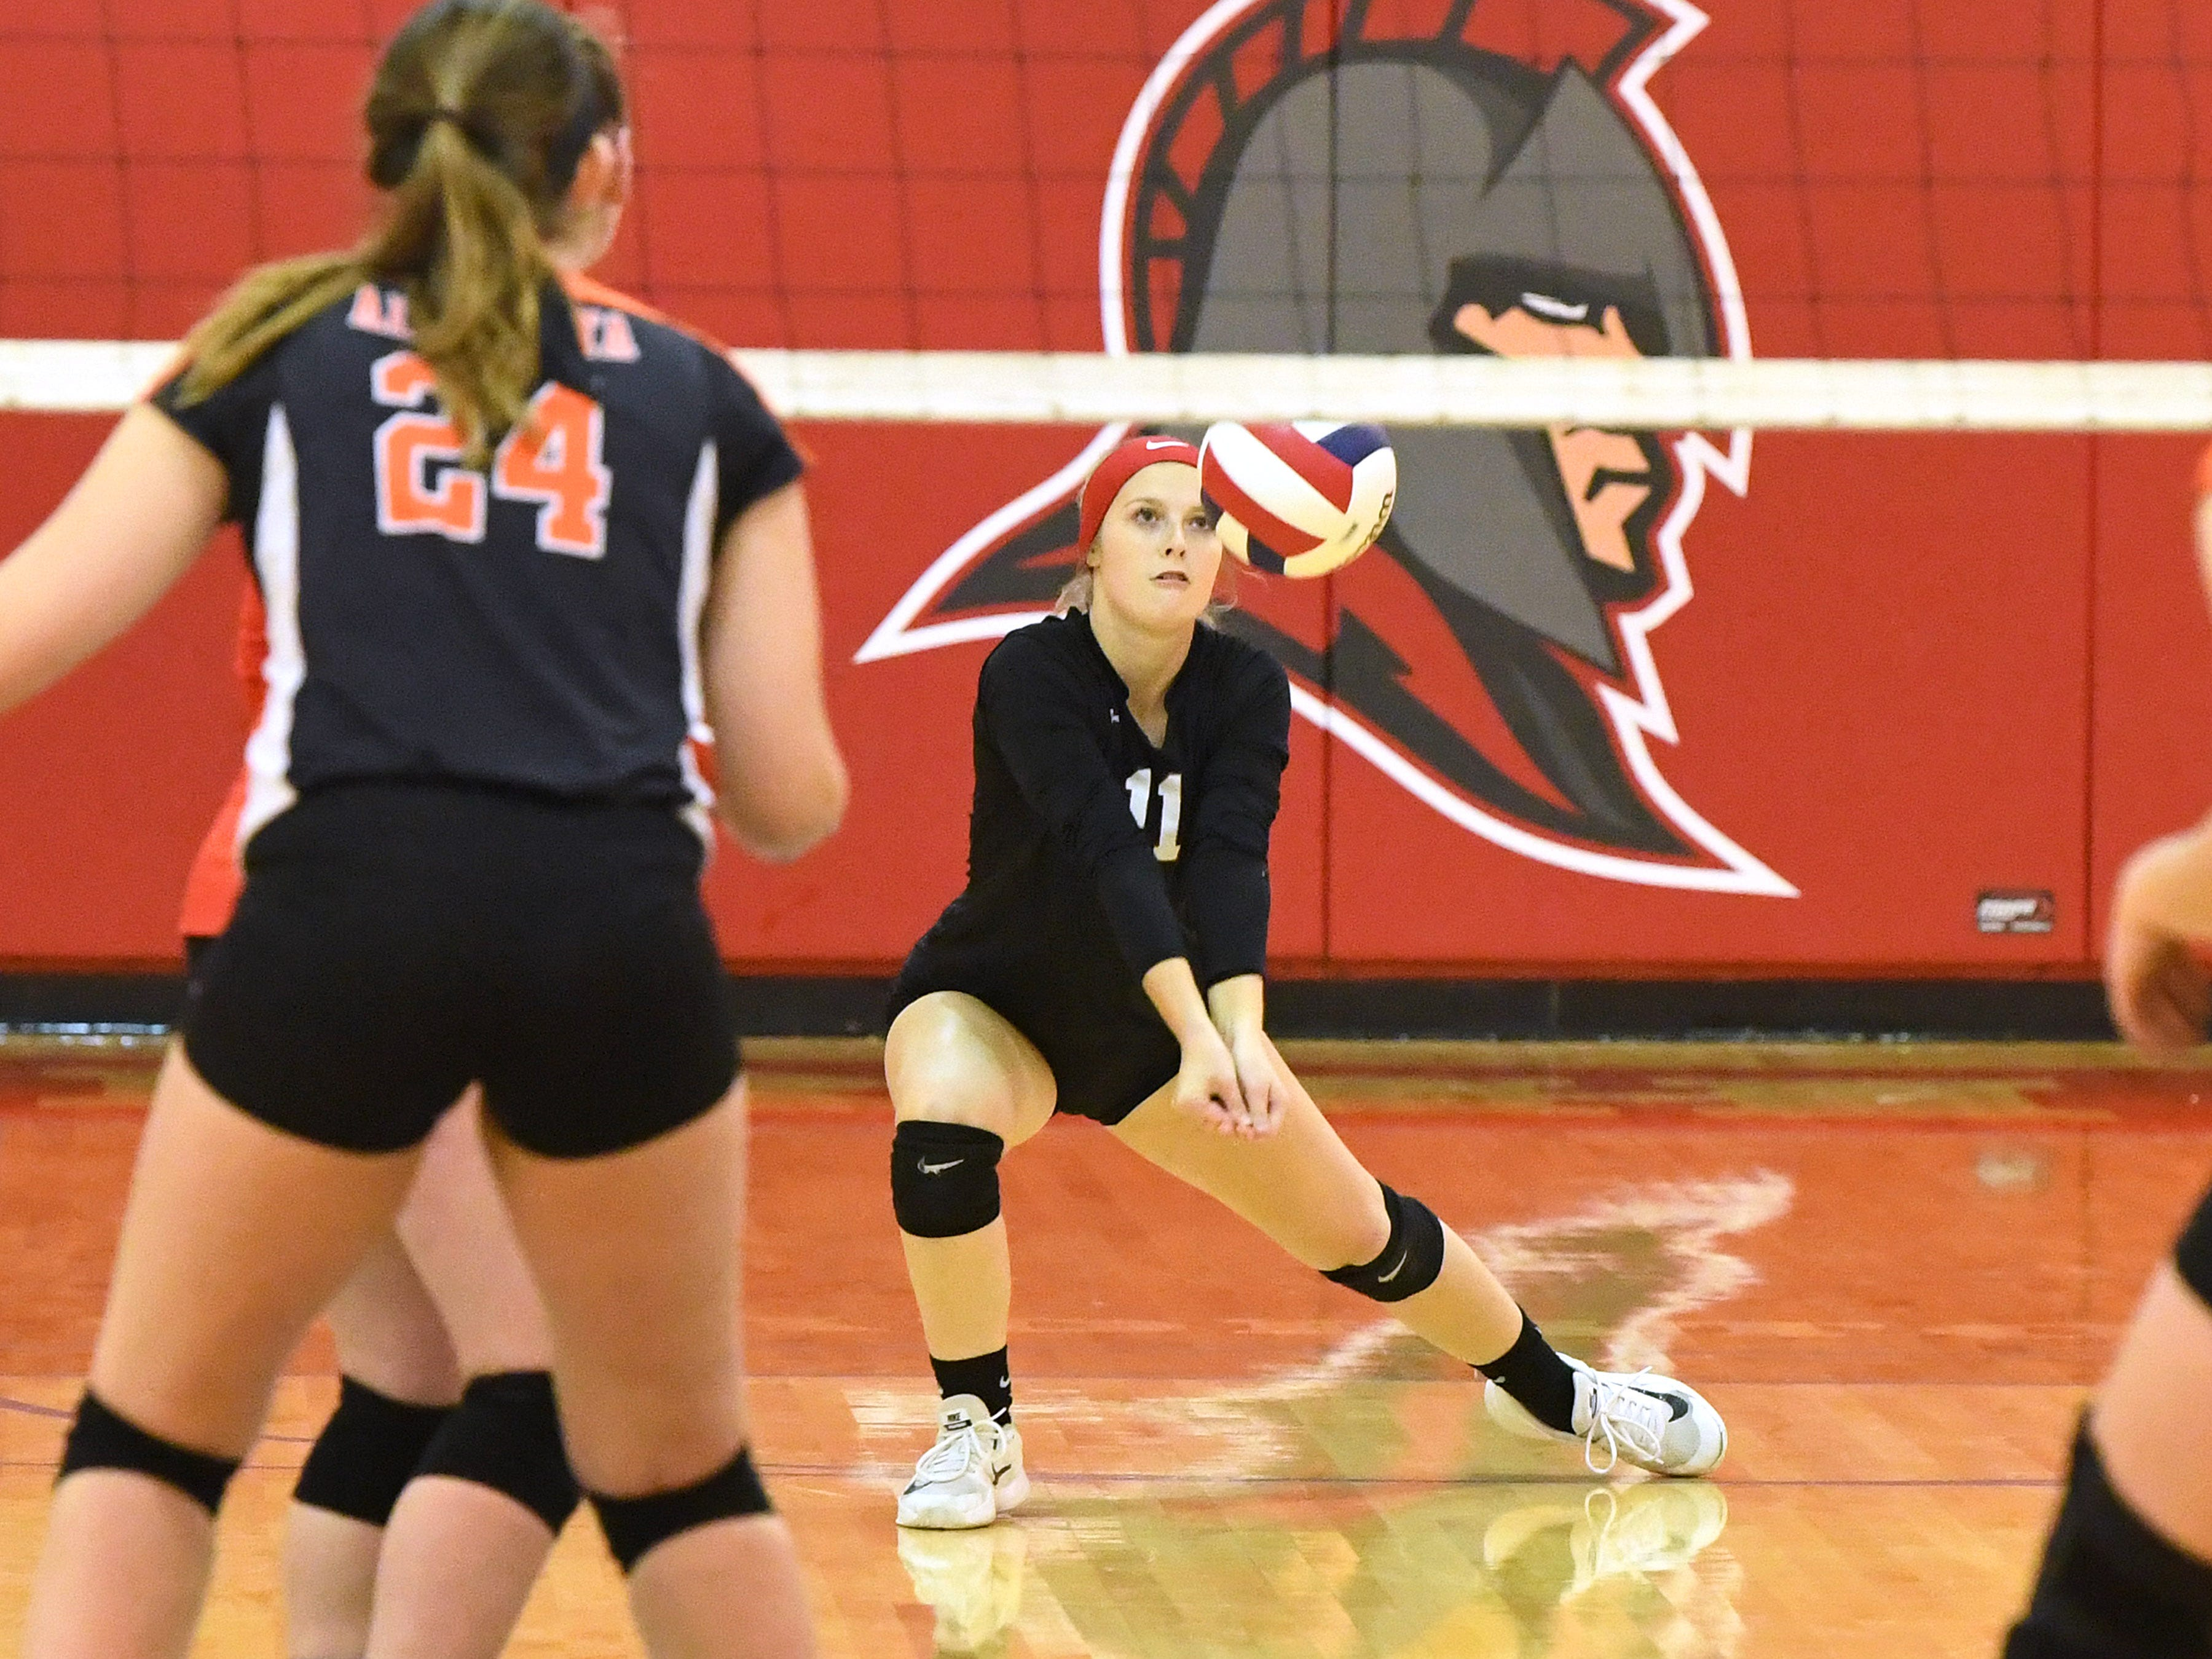 Riverheads' Samantha Persinger bumps the ball during the Region 1B volleyball championship played in Greenville on Wednesday, Nov. 7, 2018.